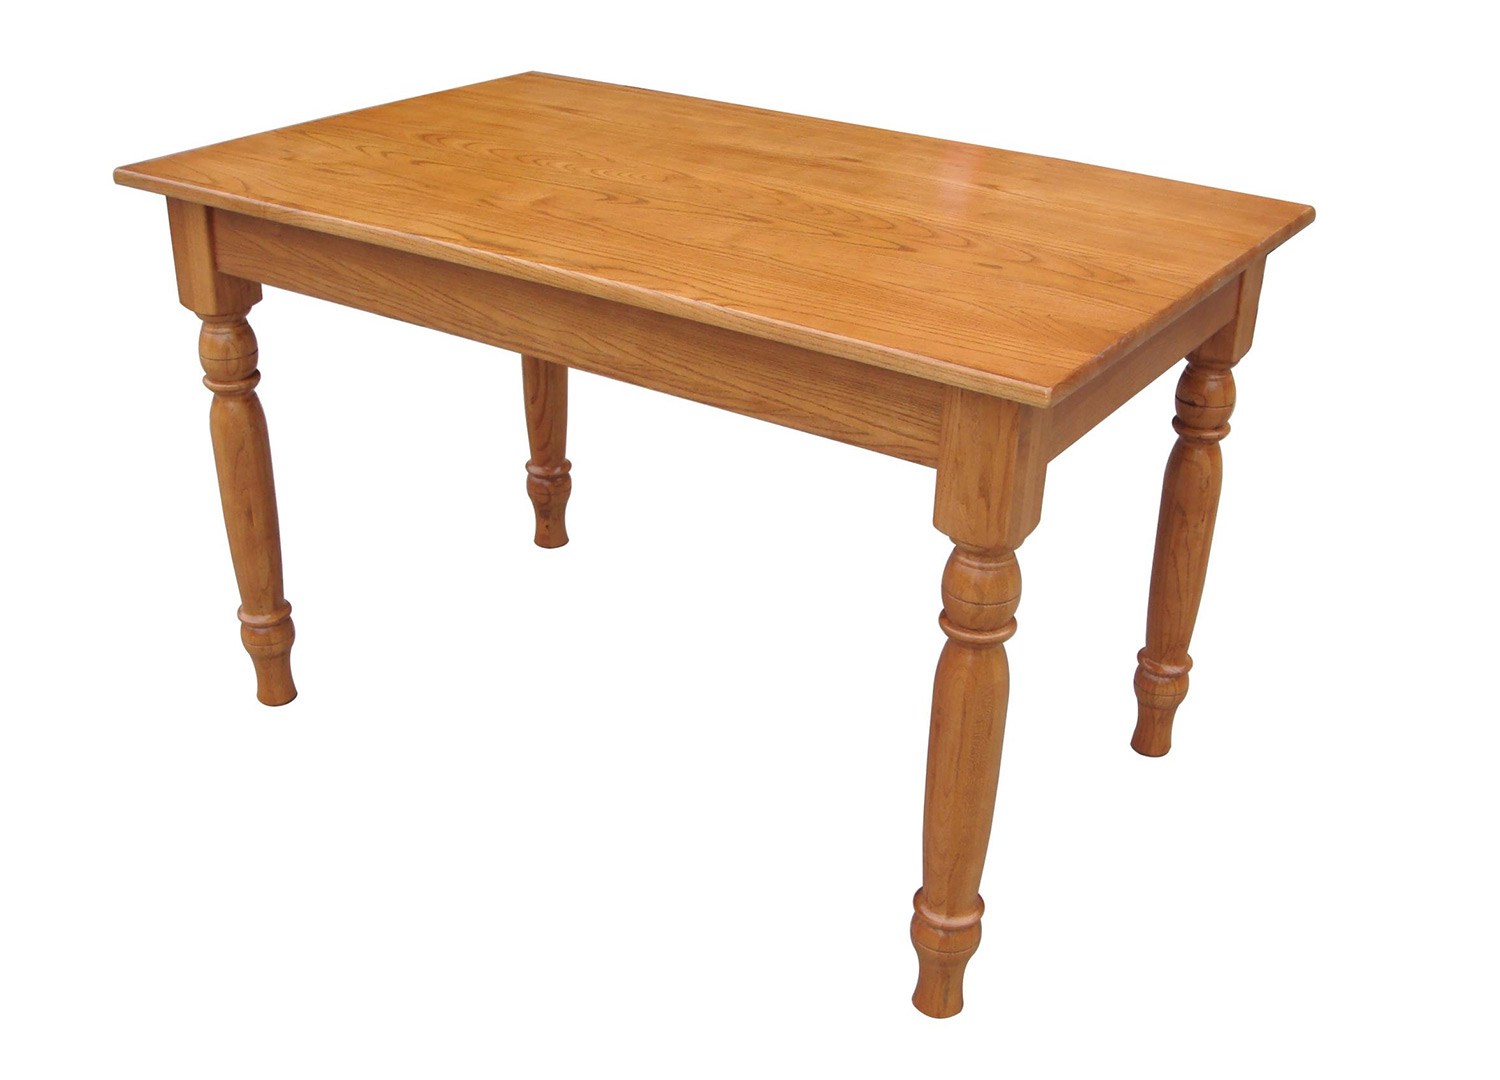 Chelsea Home Rosewood Table - Hervest Oak